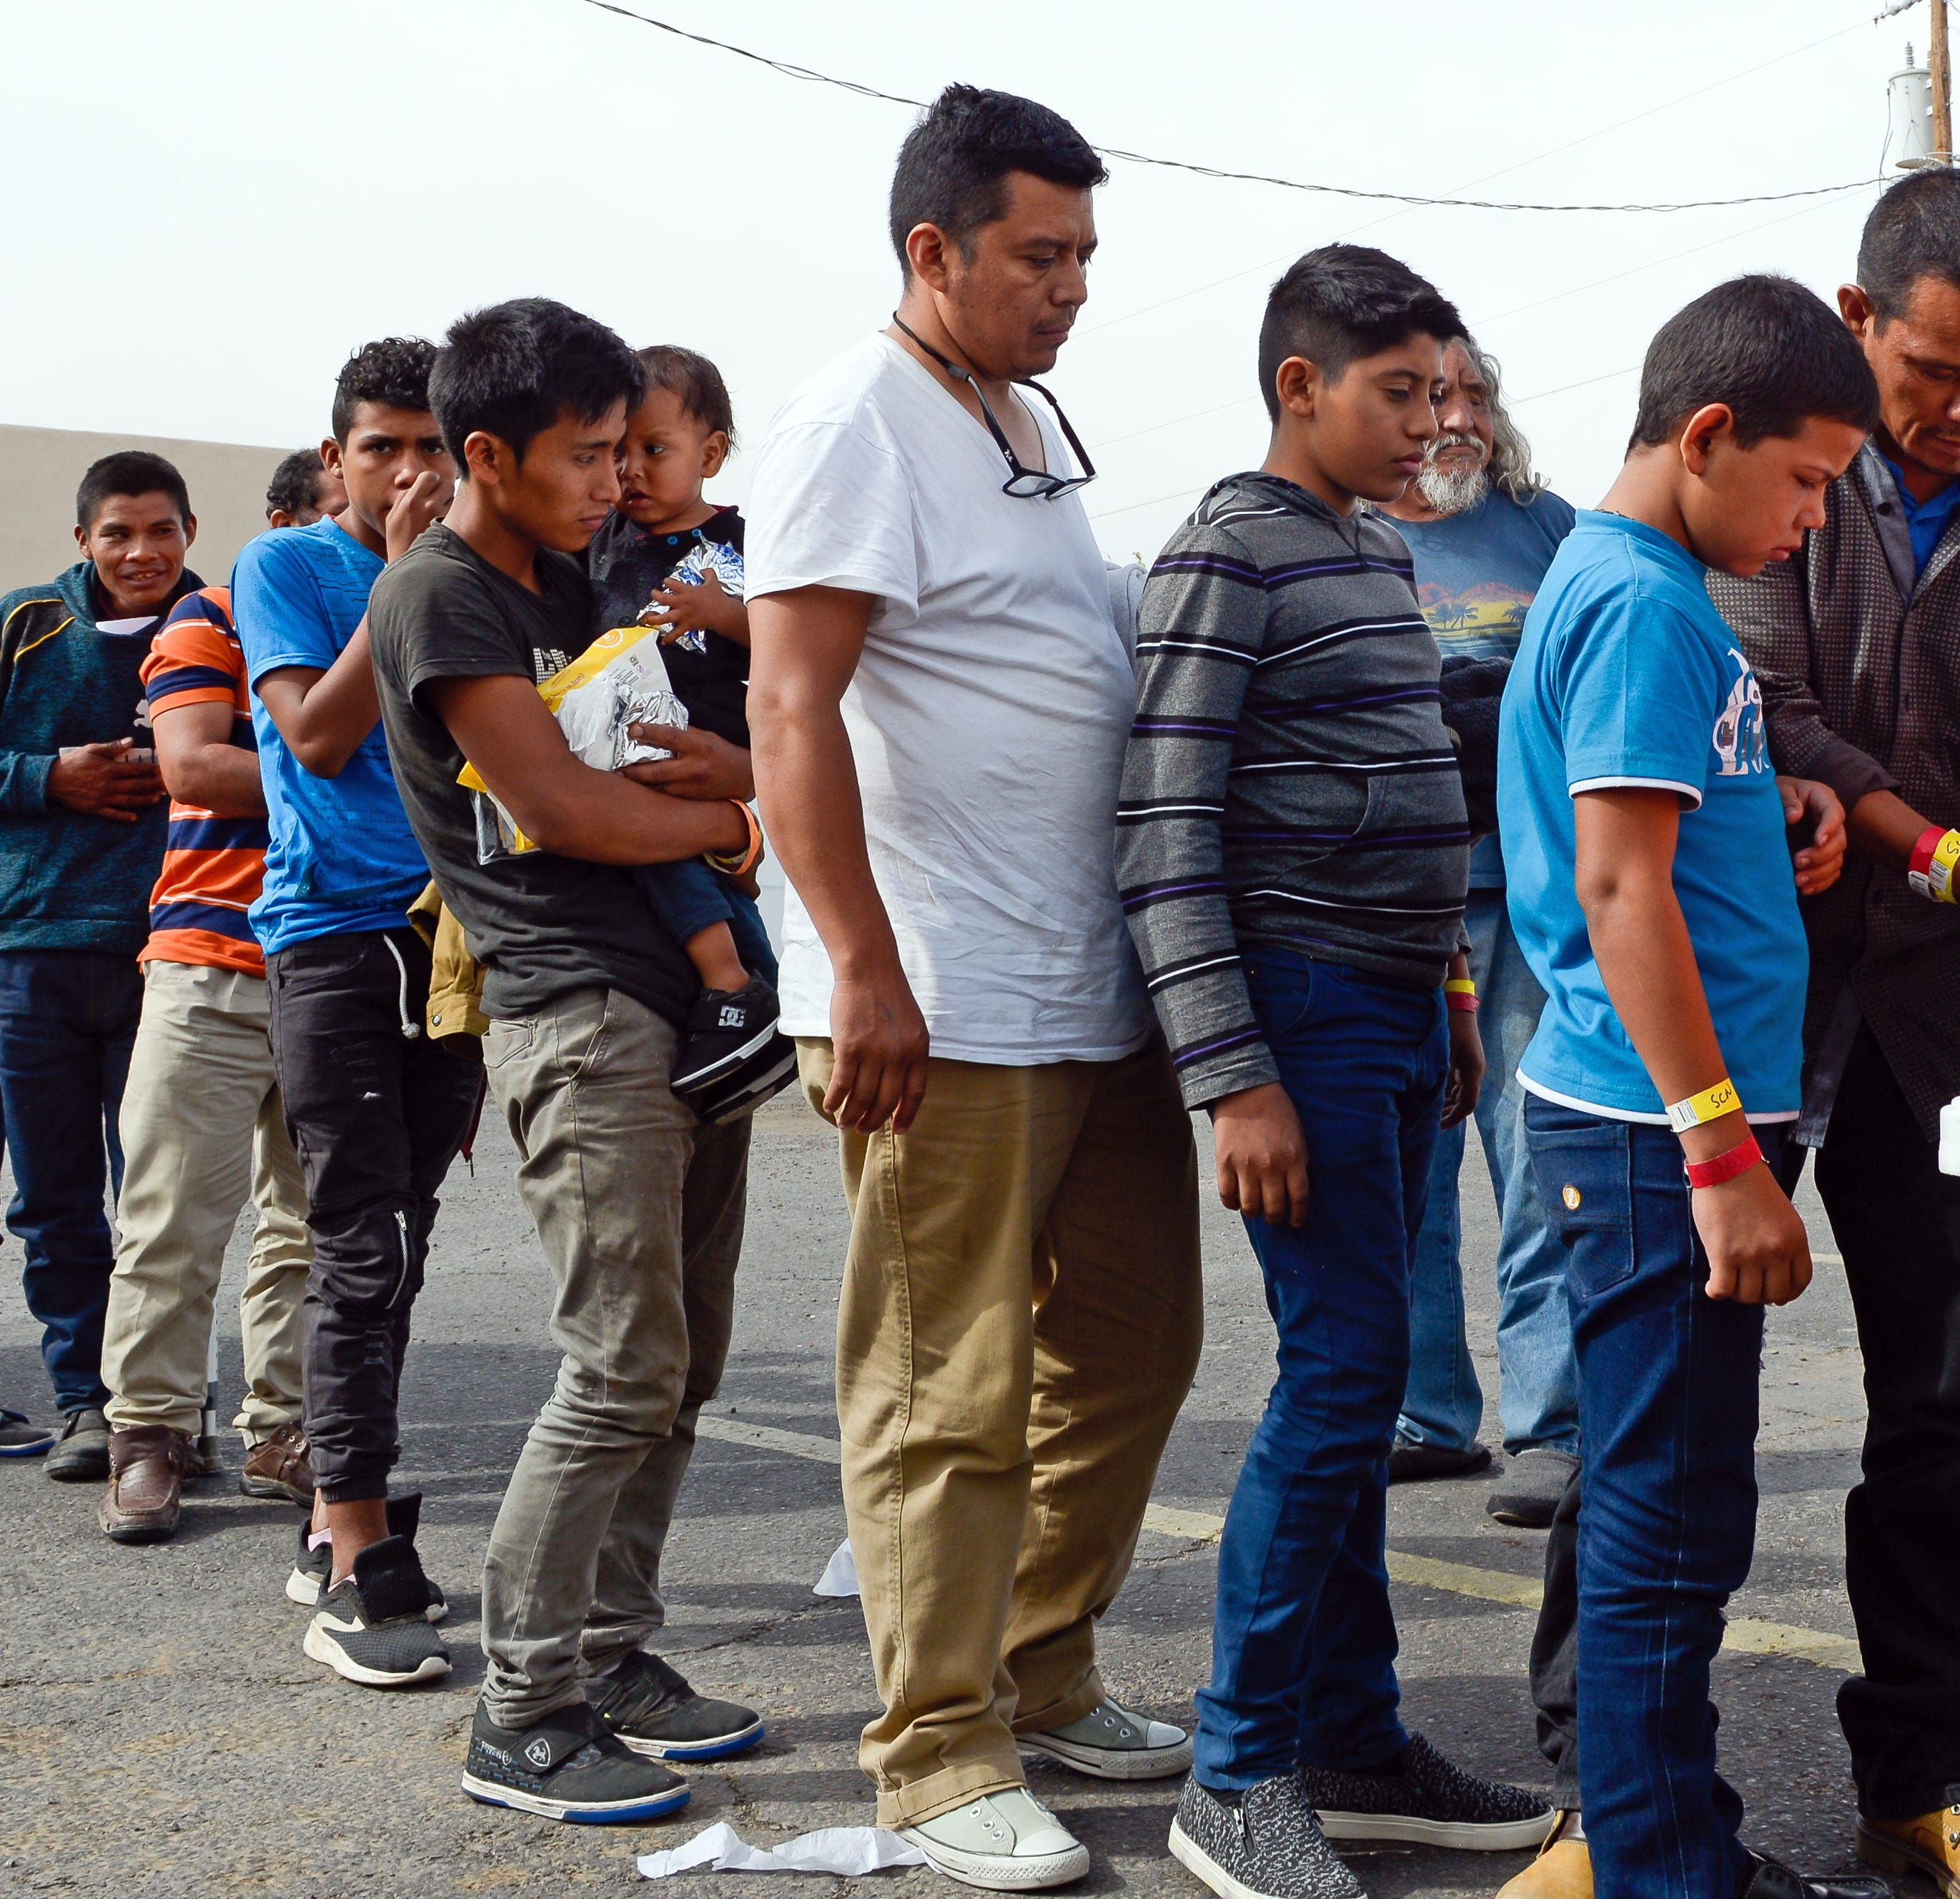 More than 1,000 migrants have now been dropped off in Las Cruces